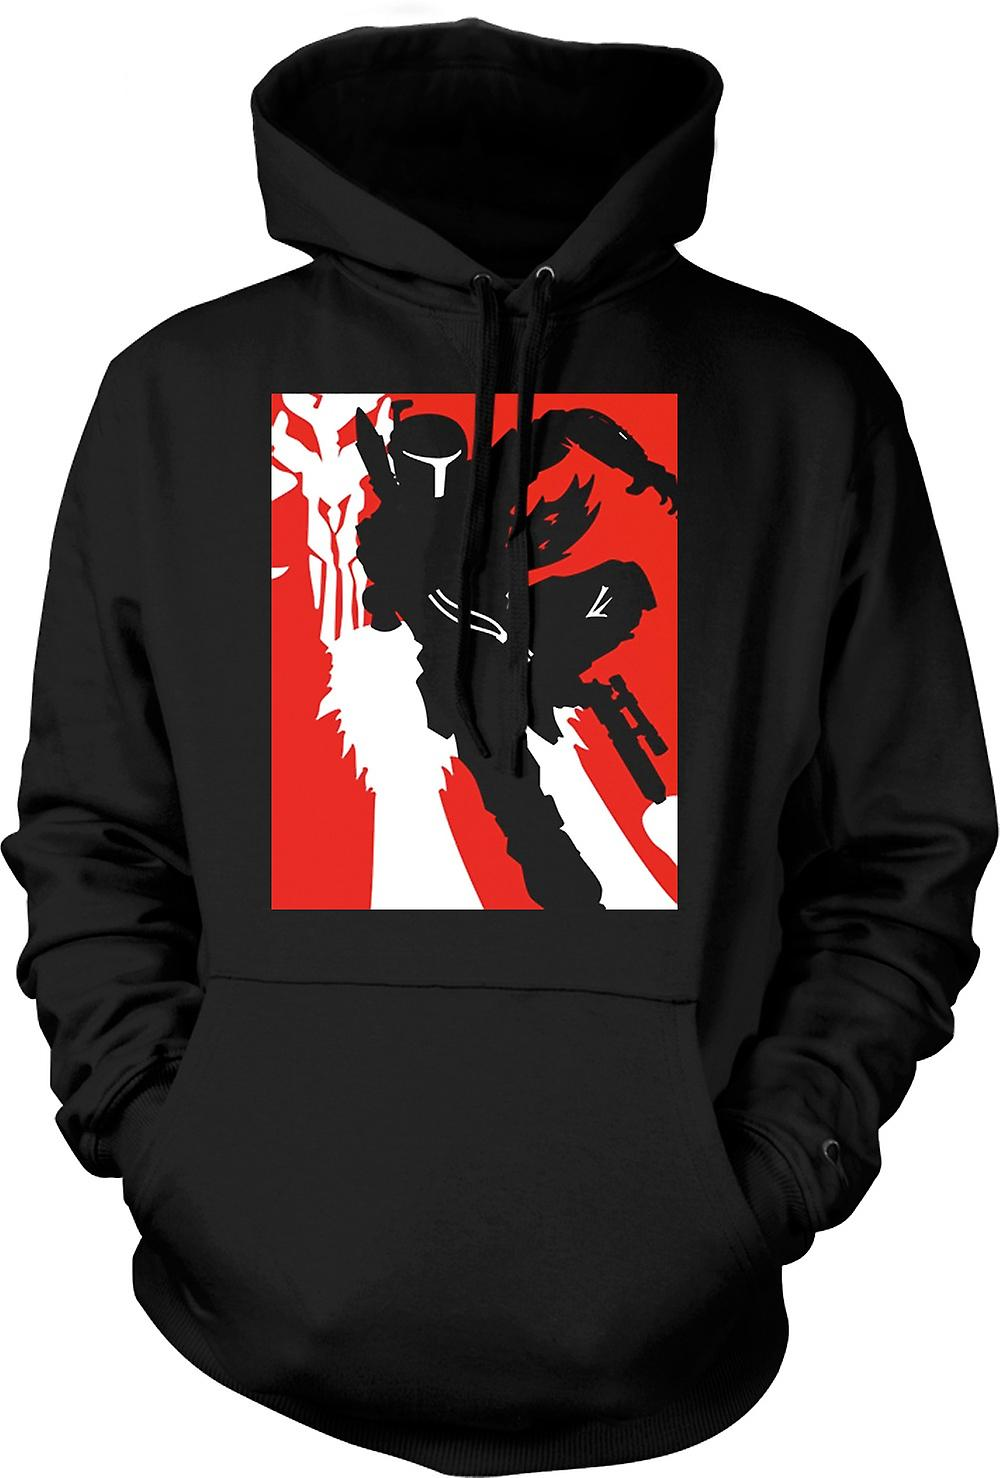 Mens Hoodie - Star Wars - Bobba Fett - Pop Art